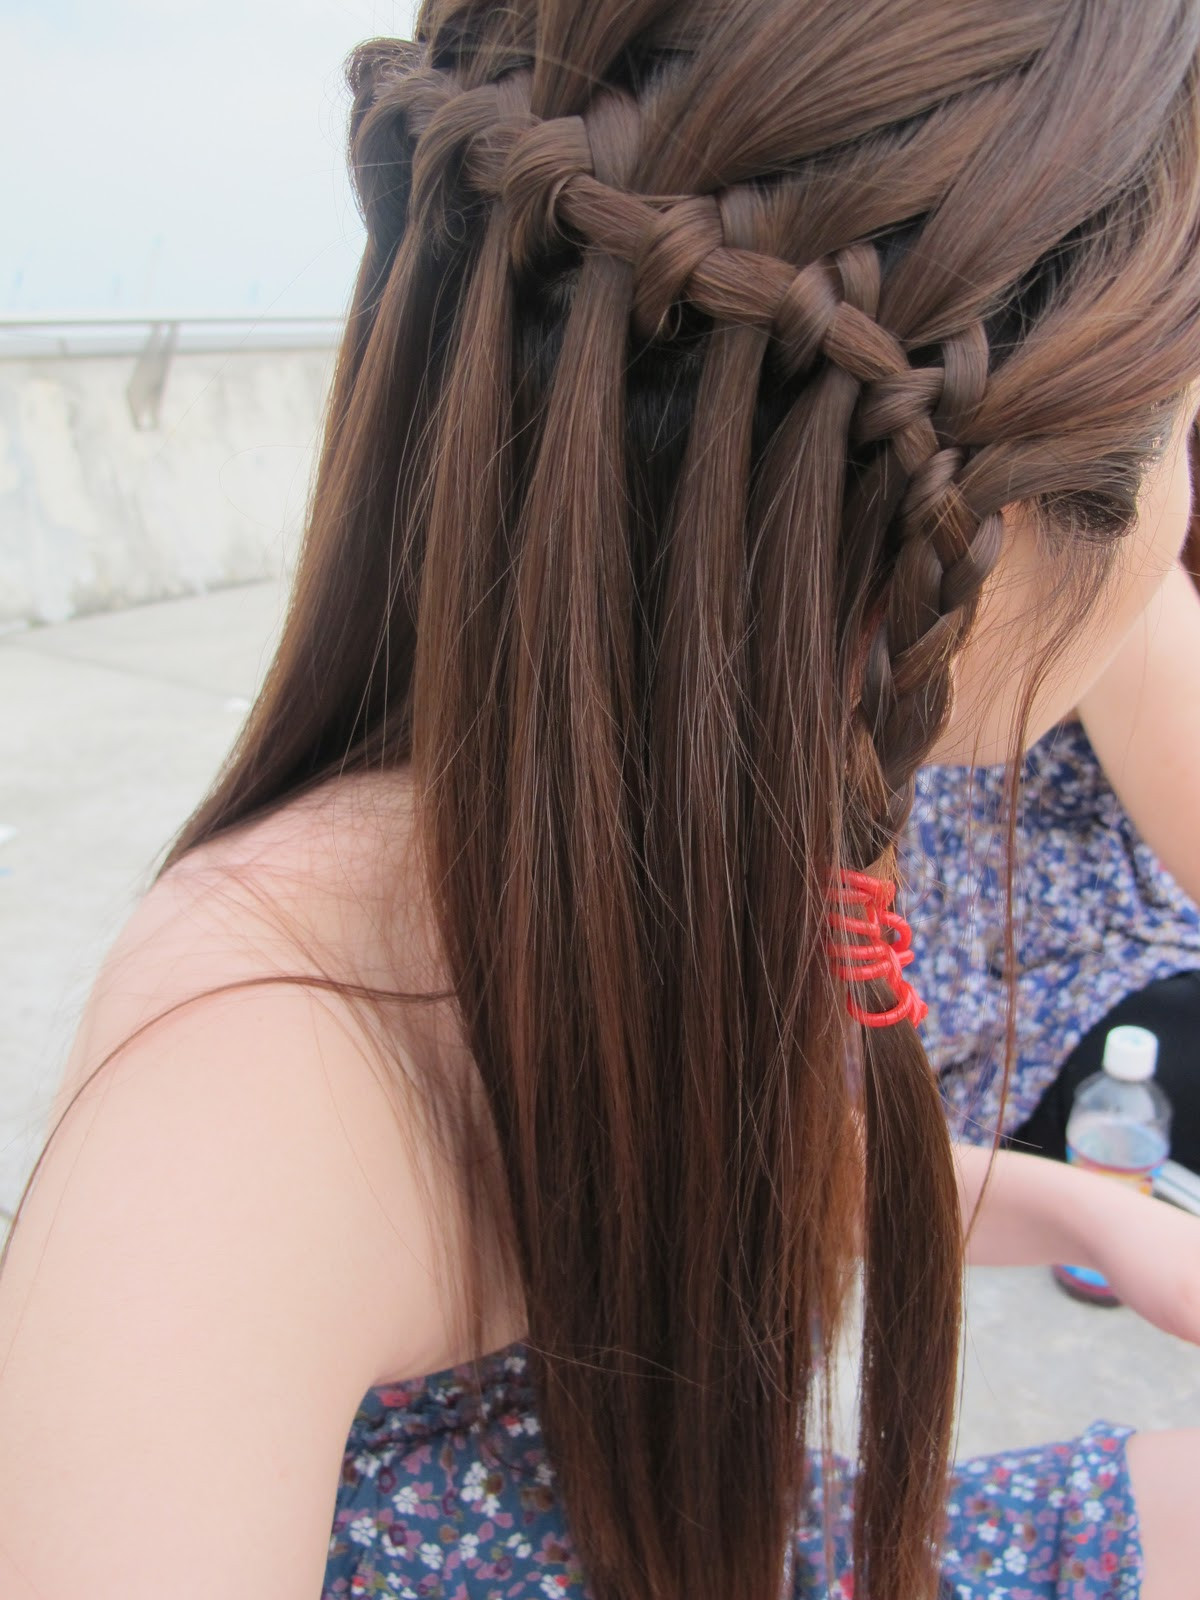 Best ideas about Waterfall Braid Hairstyles . Save or Pin Hair and Beyond Waterfall Braid Now.